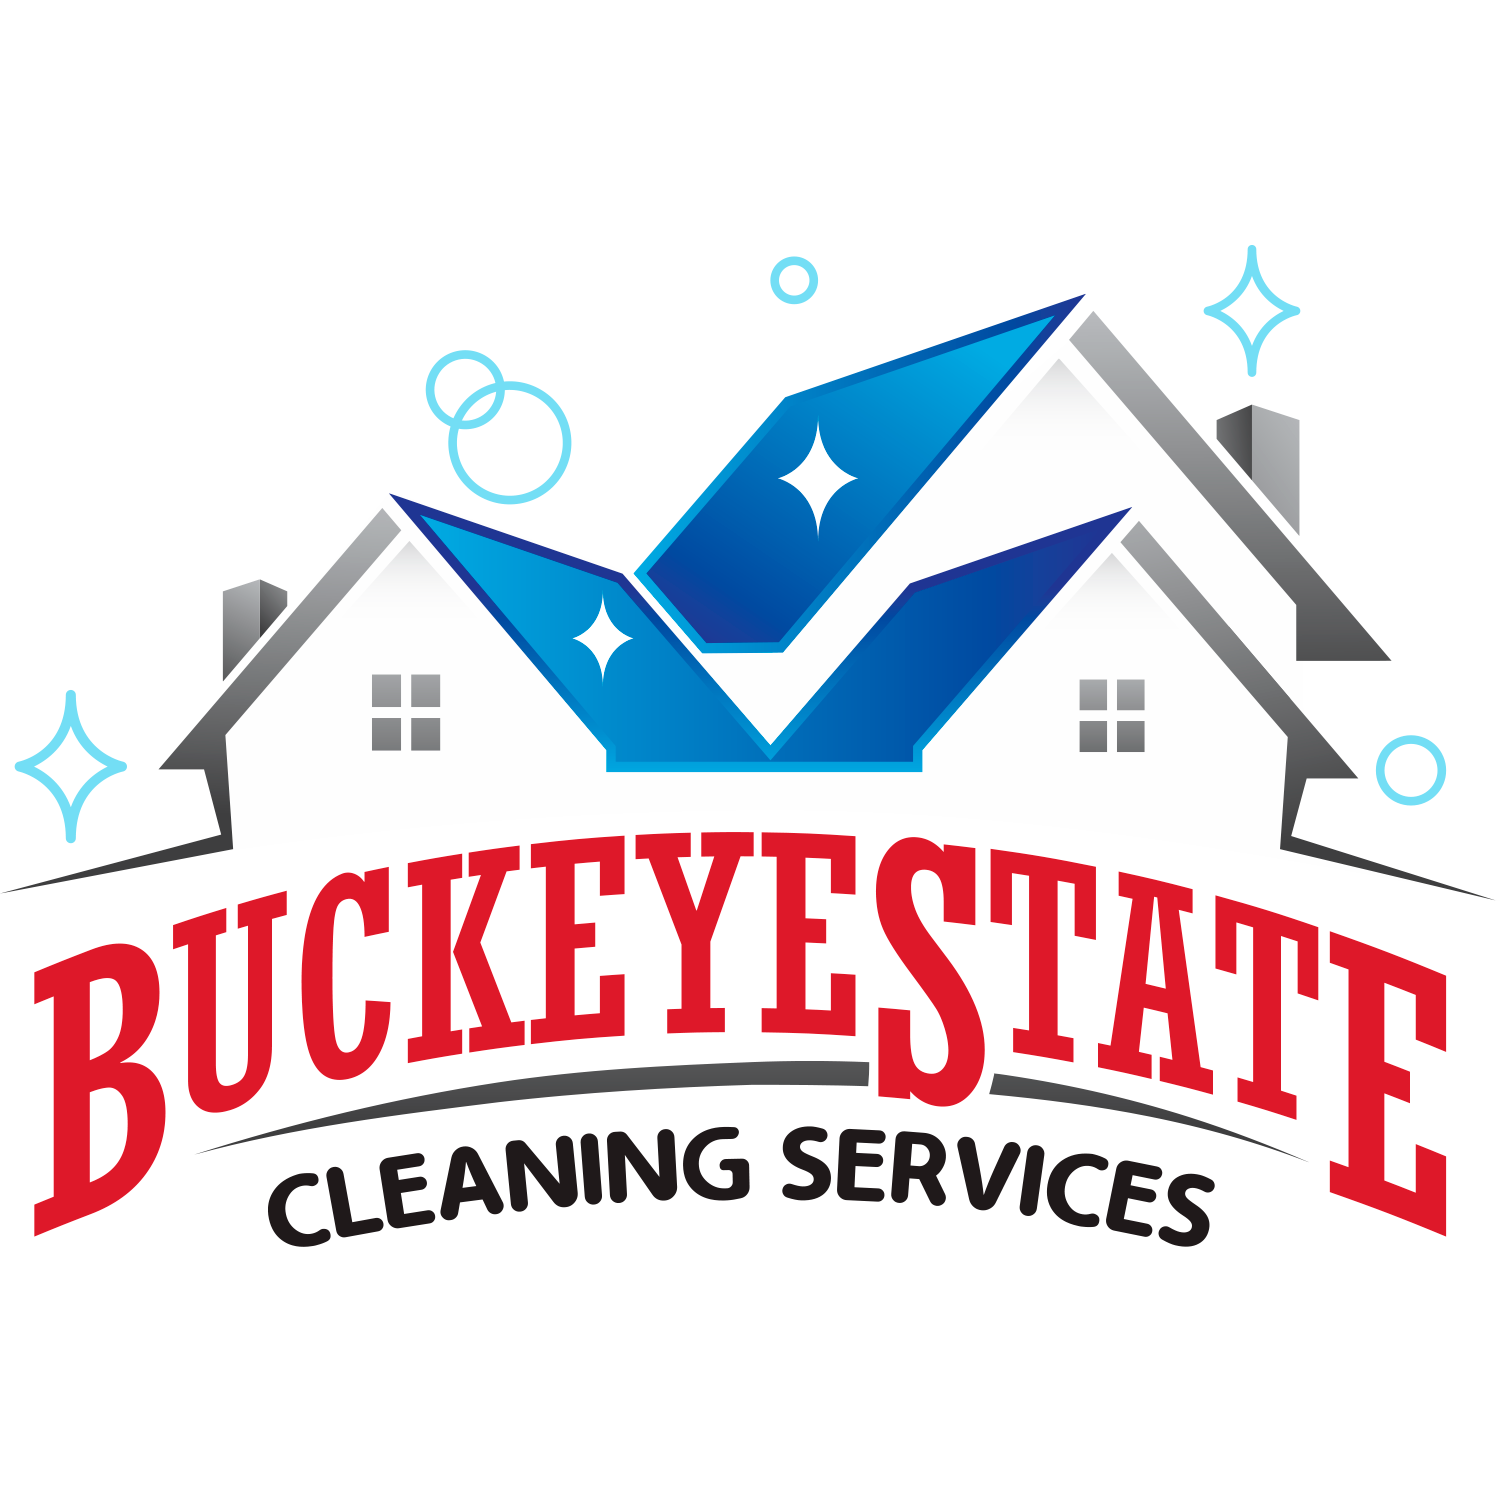 Buckeye State Cleaning | Home, Office, Green Cleaning